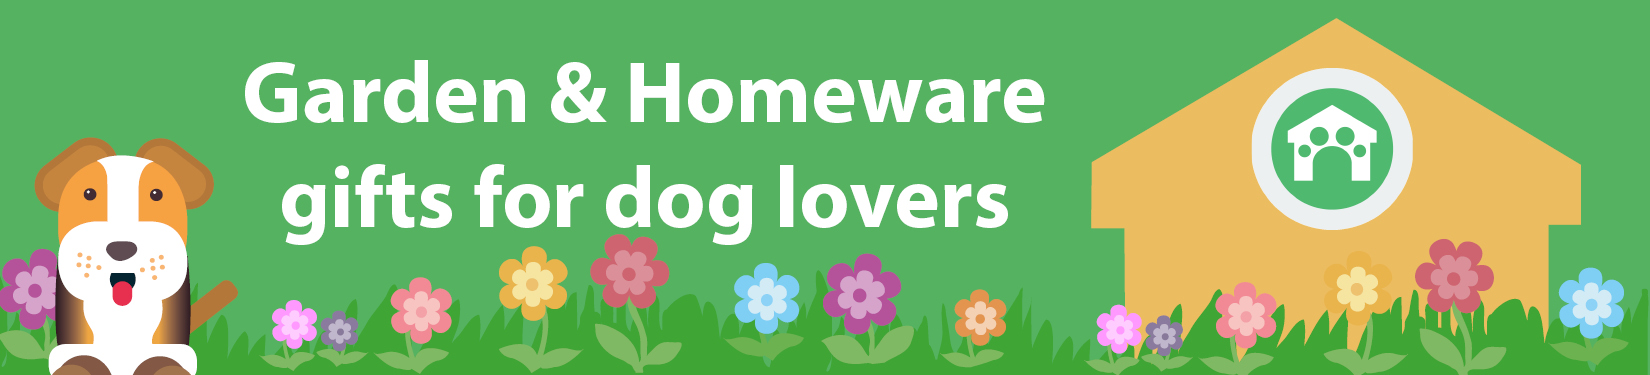 Garden and homeware gifts for dog lovers header image